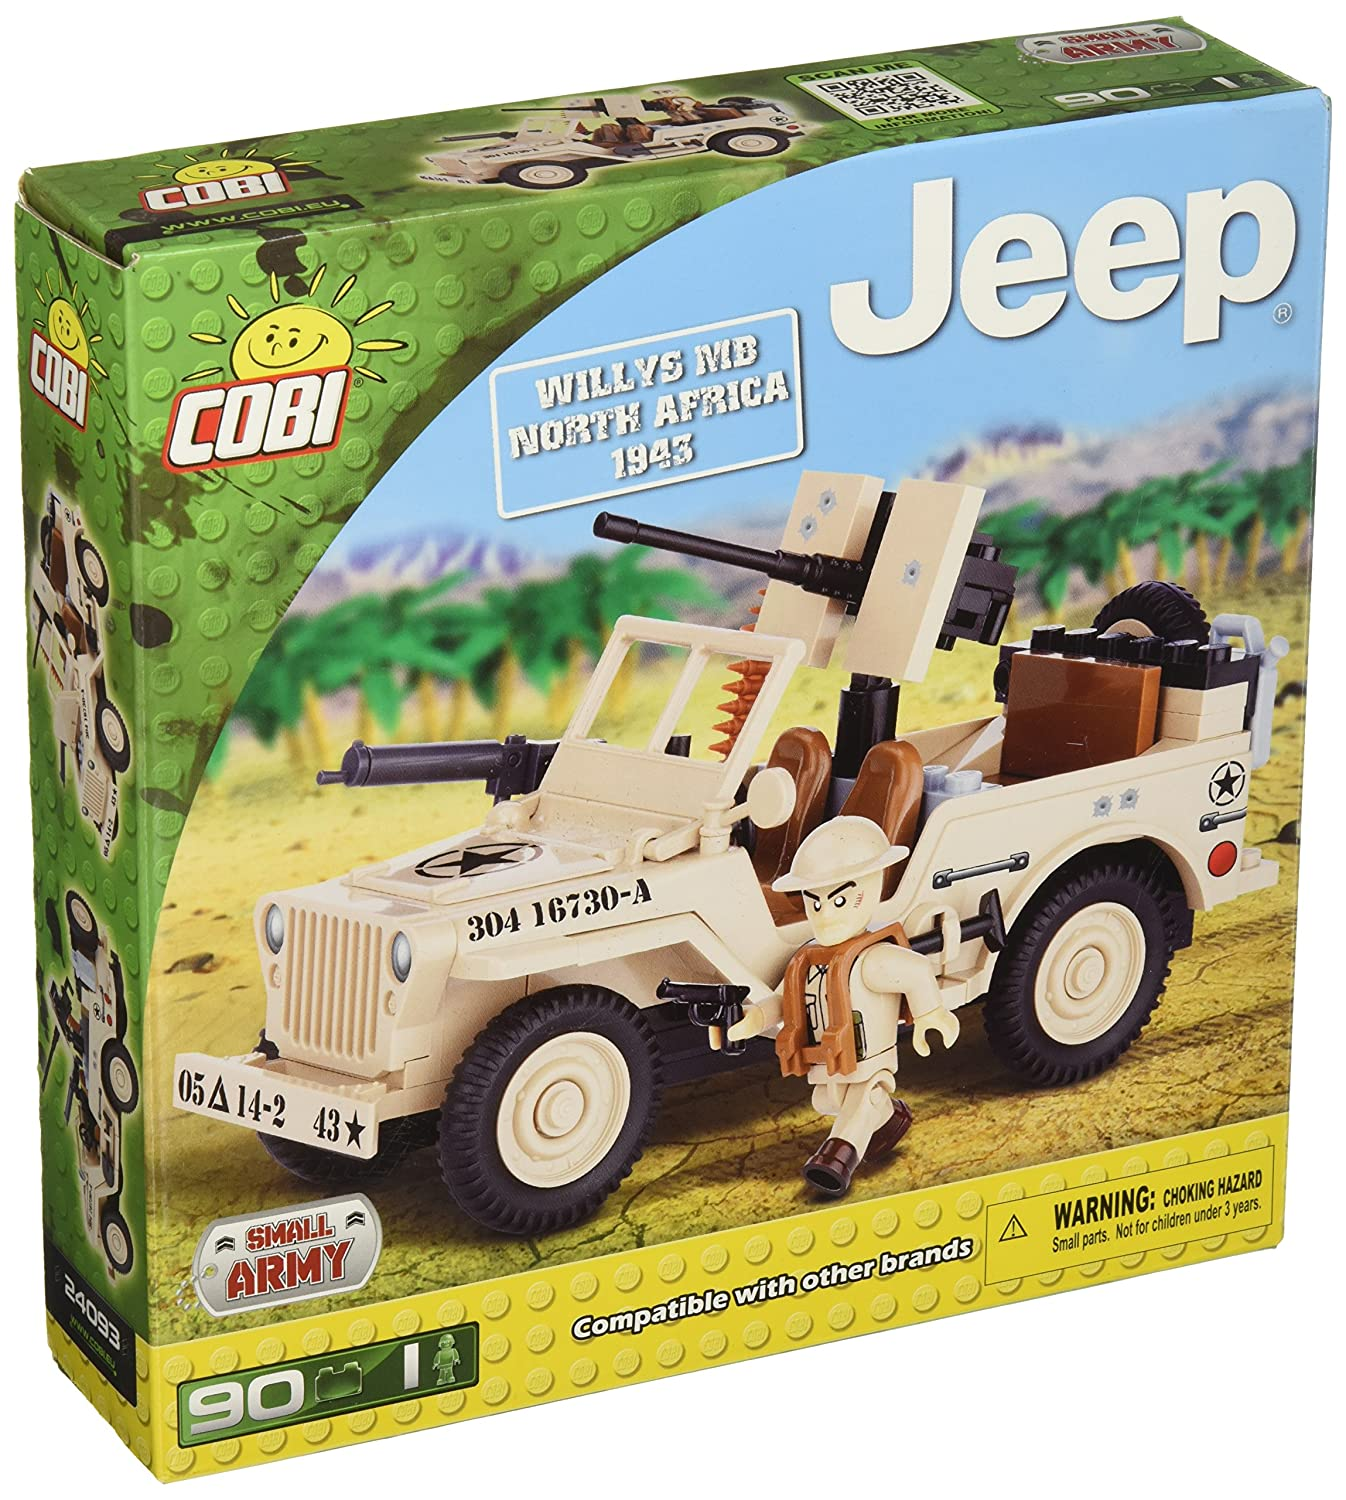 Cobi Jeep Willys Mb North Africa 1943 Set Toys Games Jeeps On Filter Box